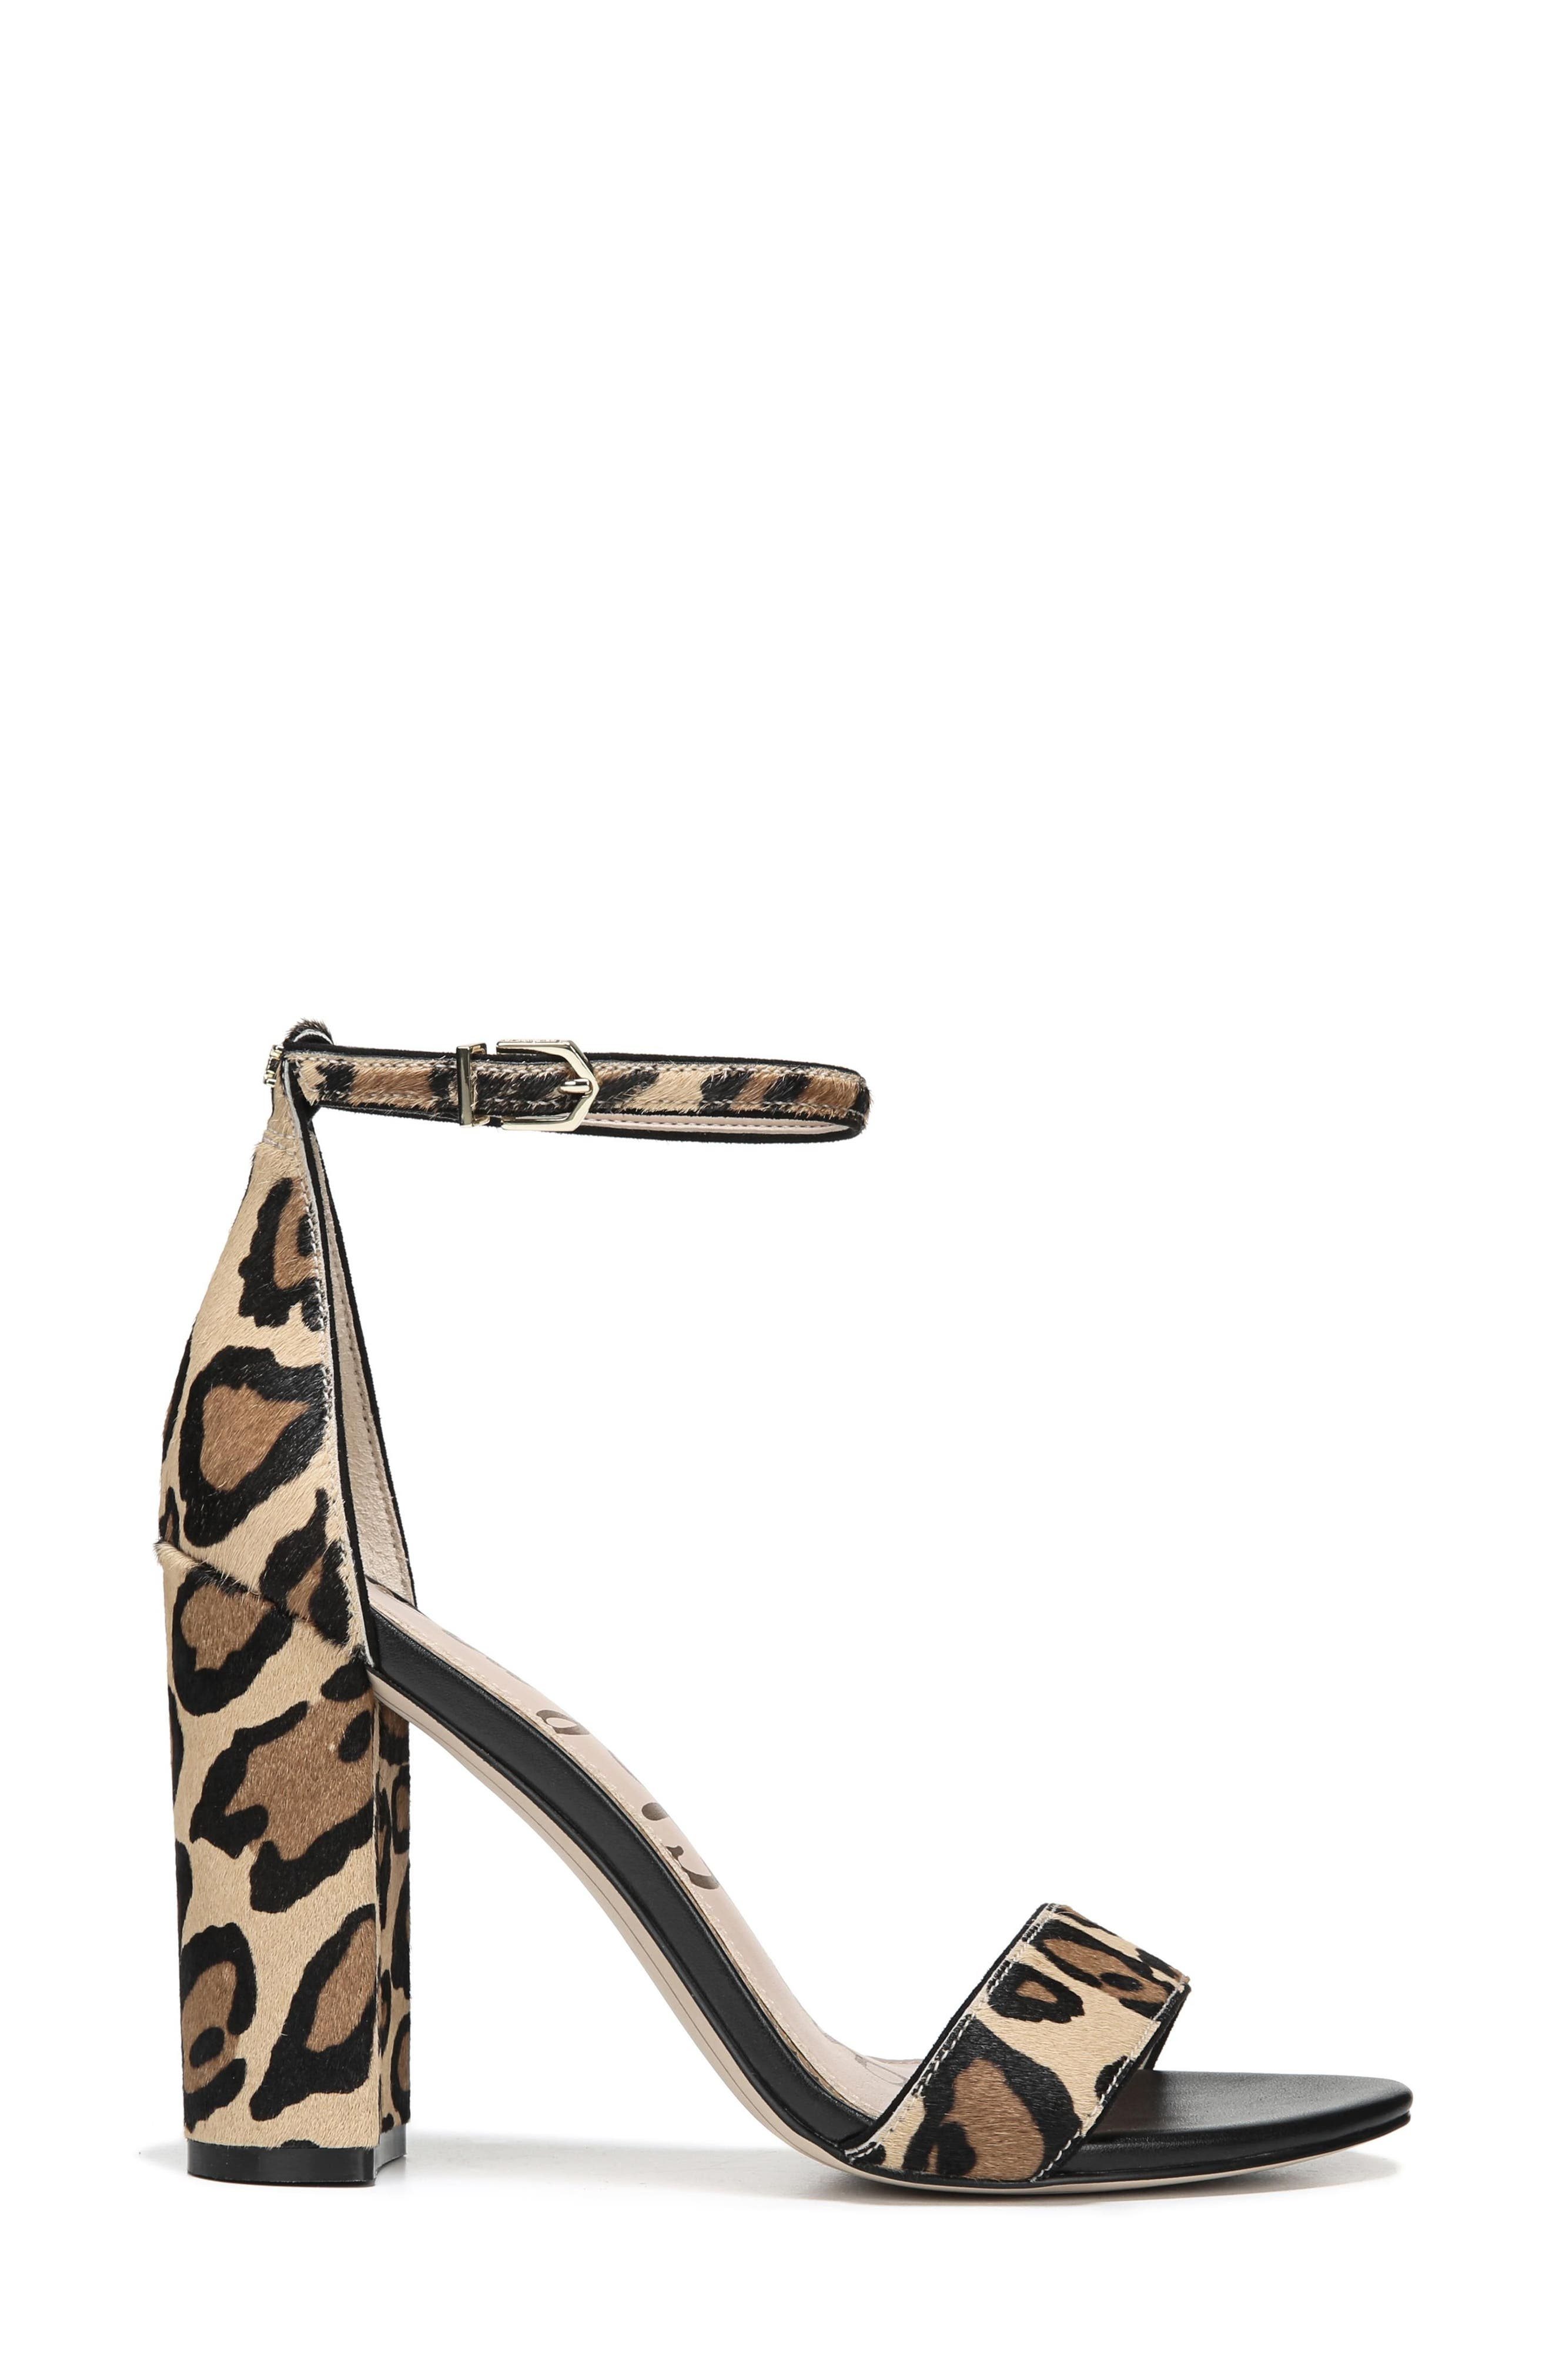 Yaro Ankle Strap Sandal,                             Alternate thumbnail 3, color,                             New Nude Leopard Calf Hair